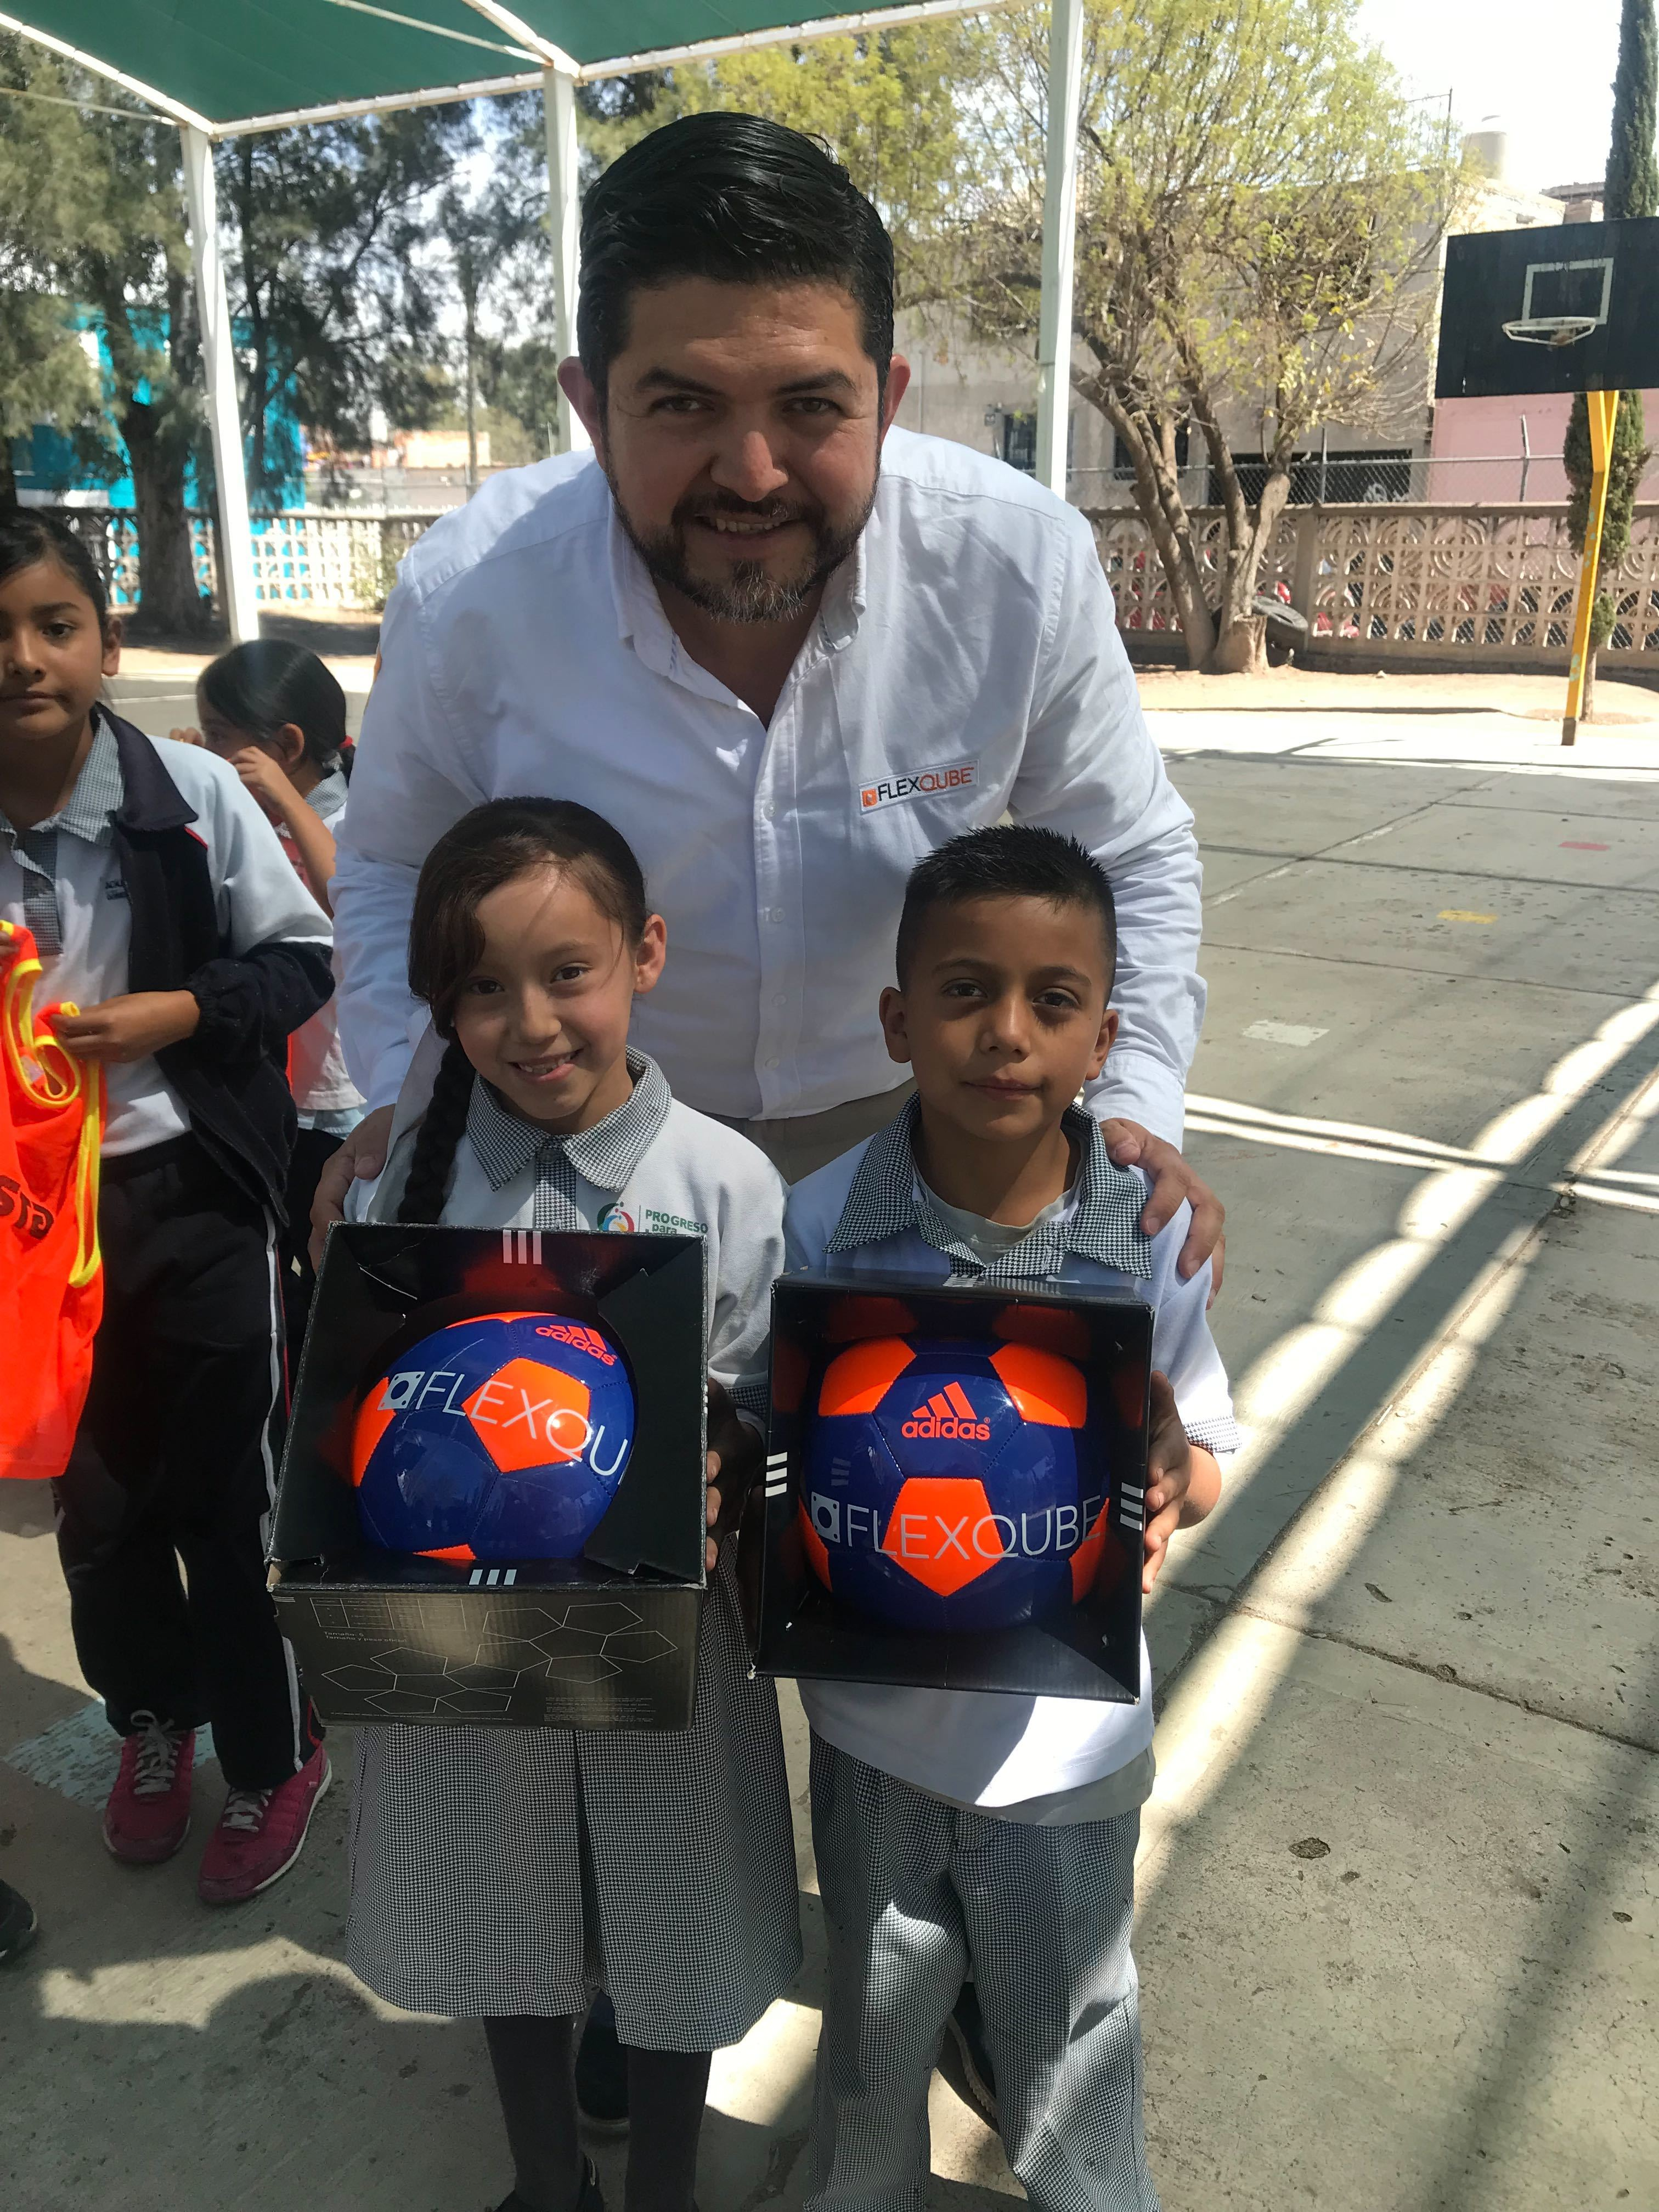 FlexQube Mexico Sales Manager Hector Flores giving our footballs to children in Mexico